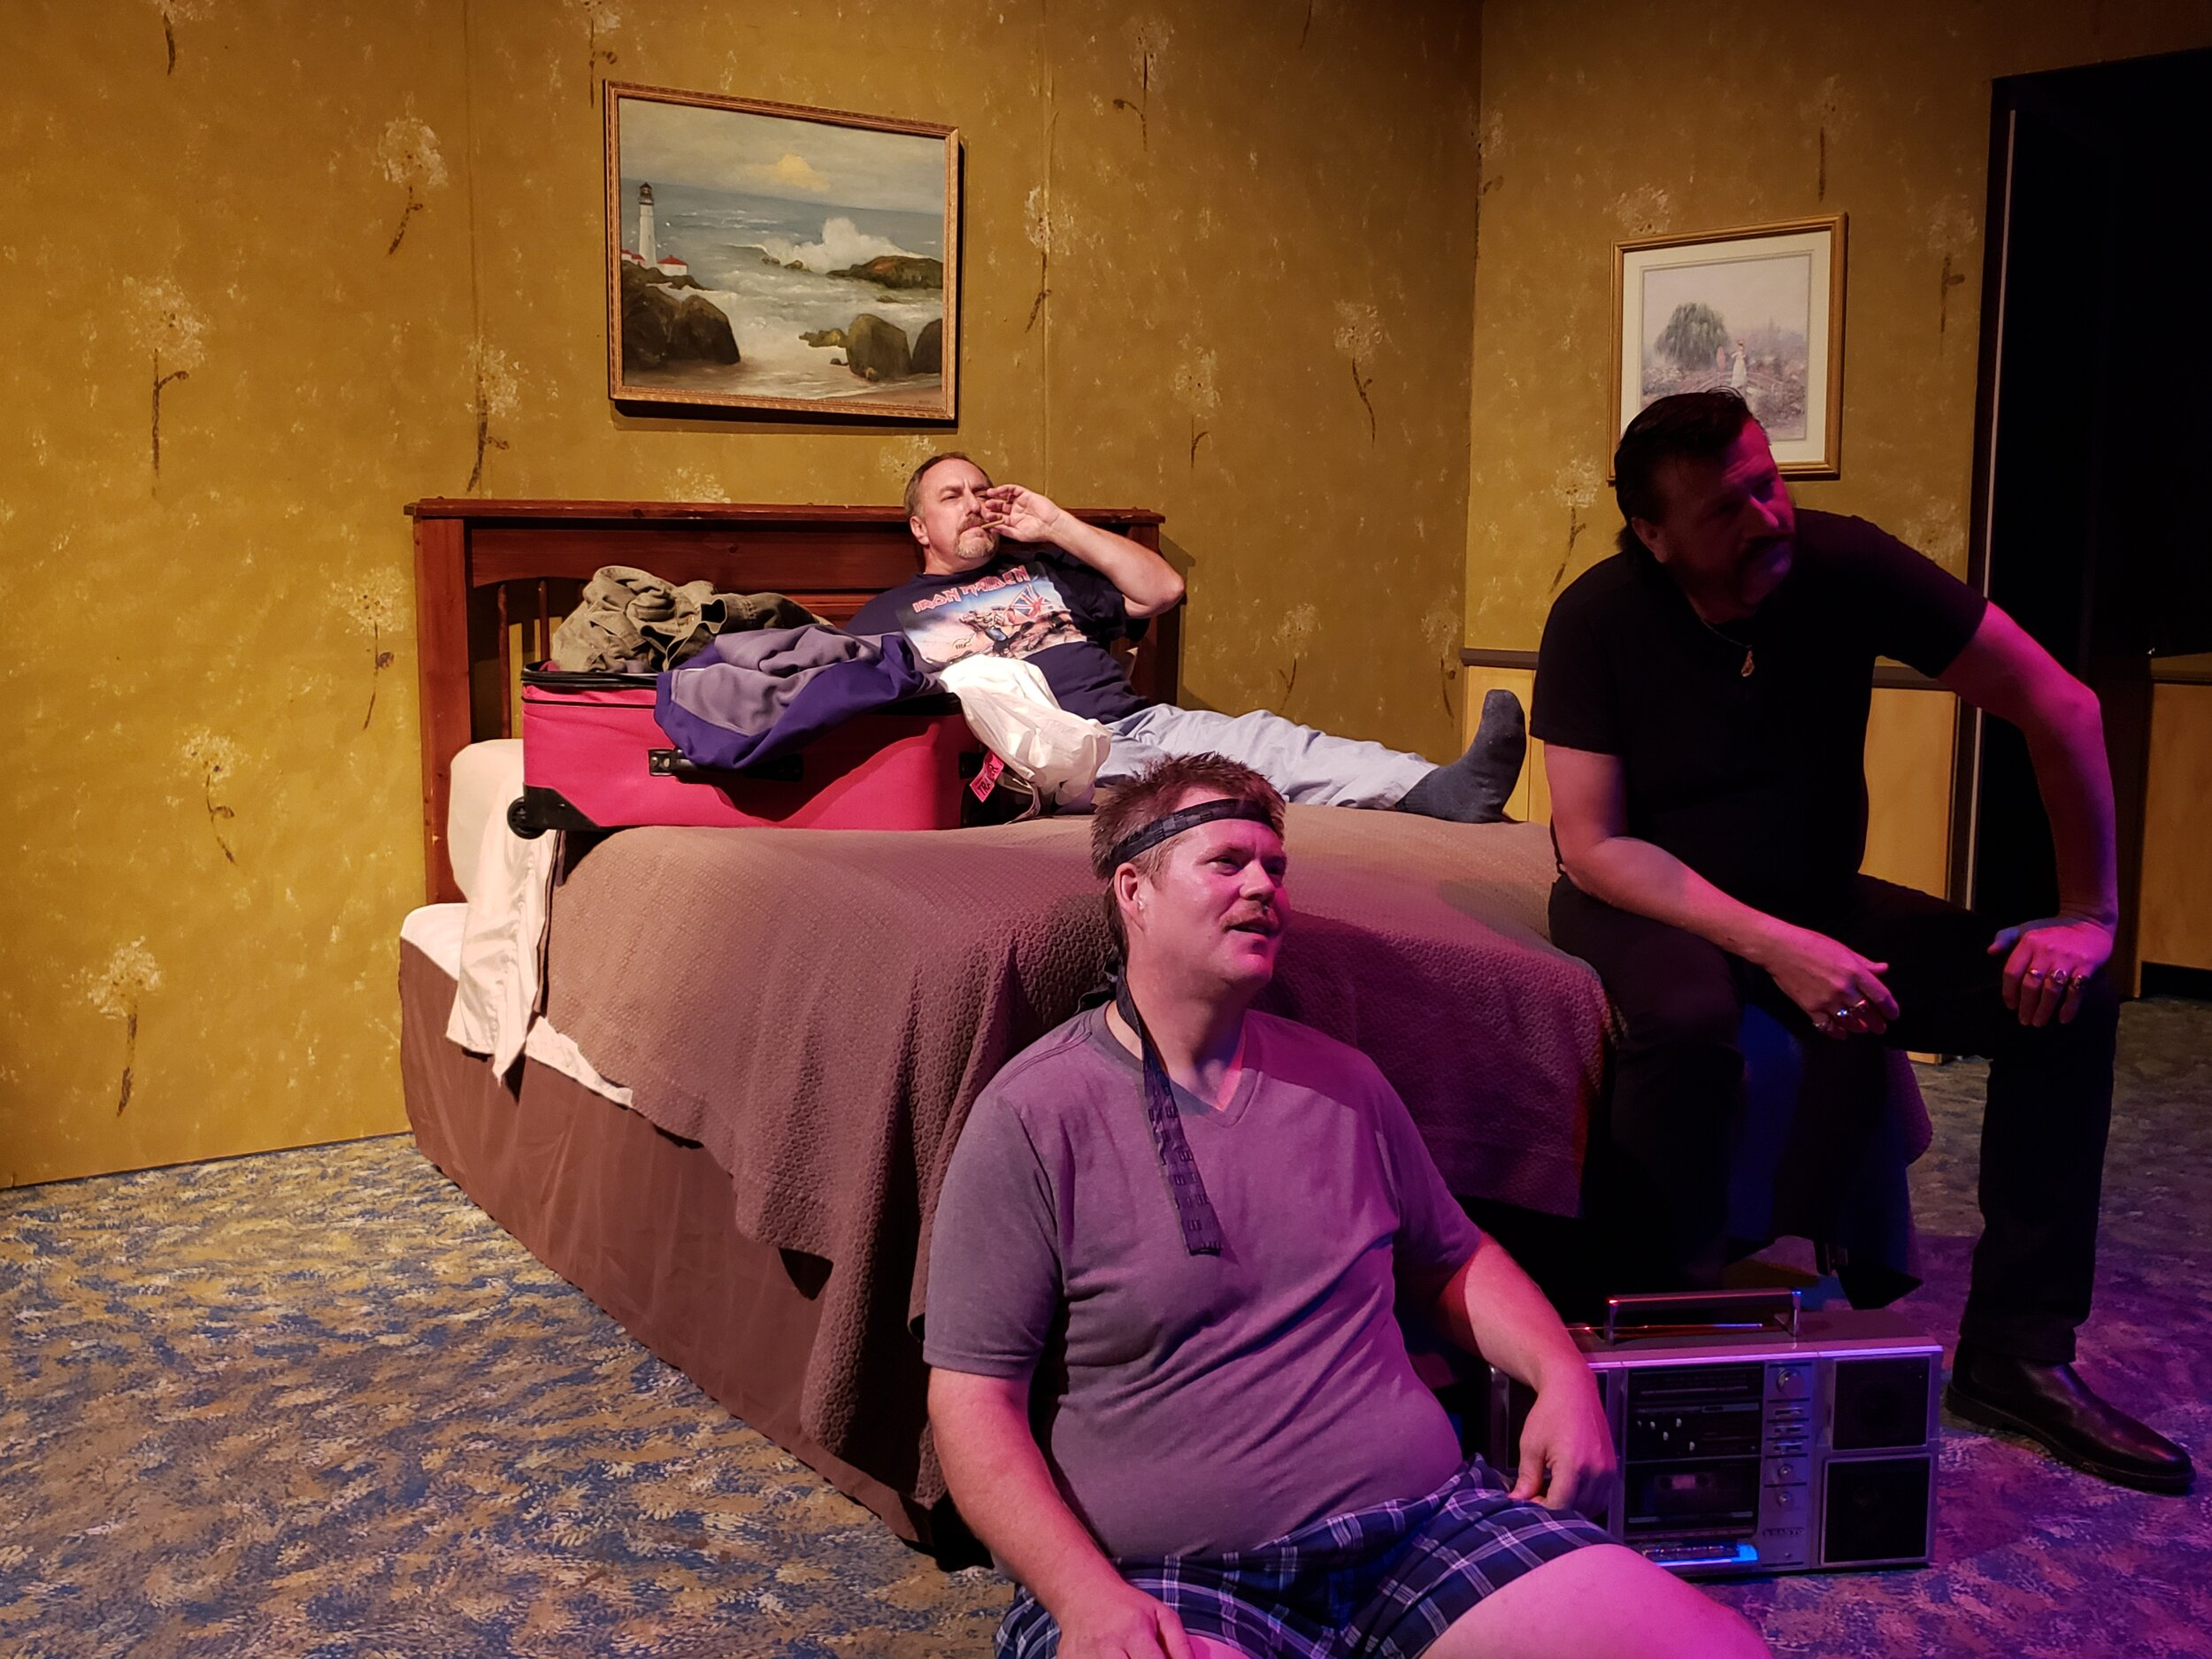 A great run in at Hillsboro Artists' Regional Theatre ends September 22. Check it out!  https://www.hart-theatre.org/2019/06/03/reunion/